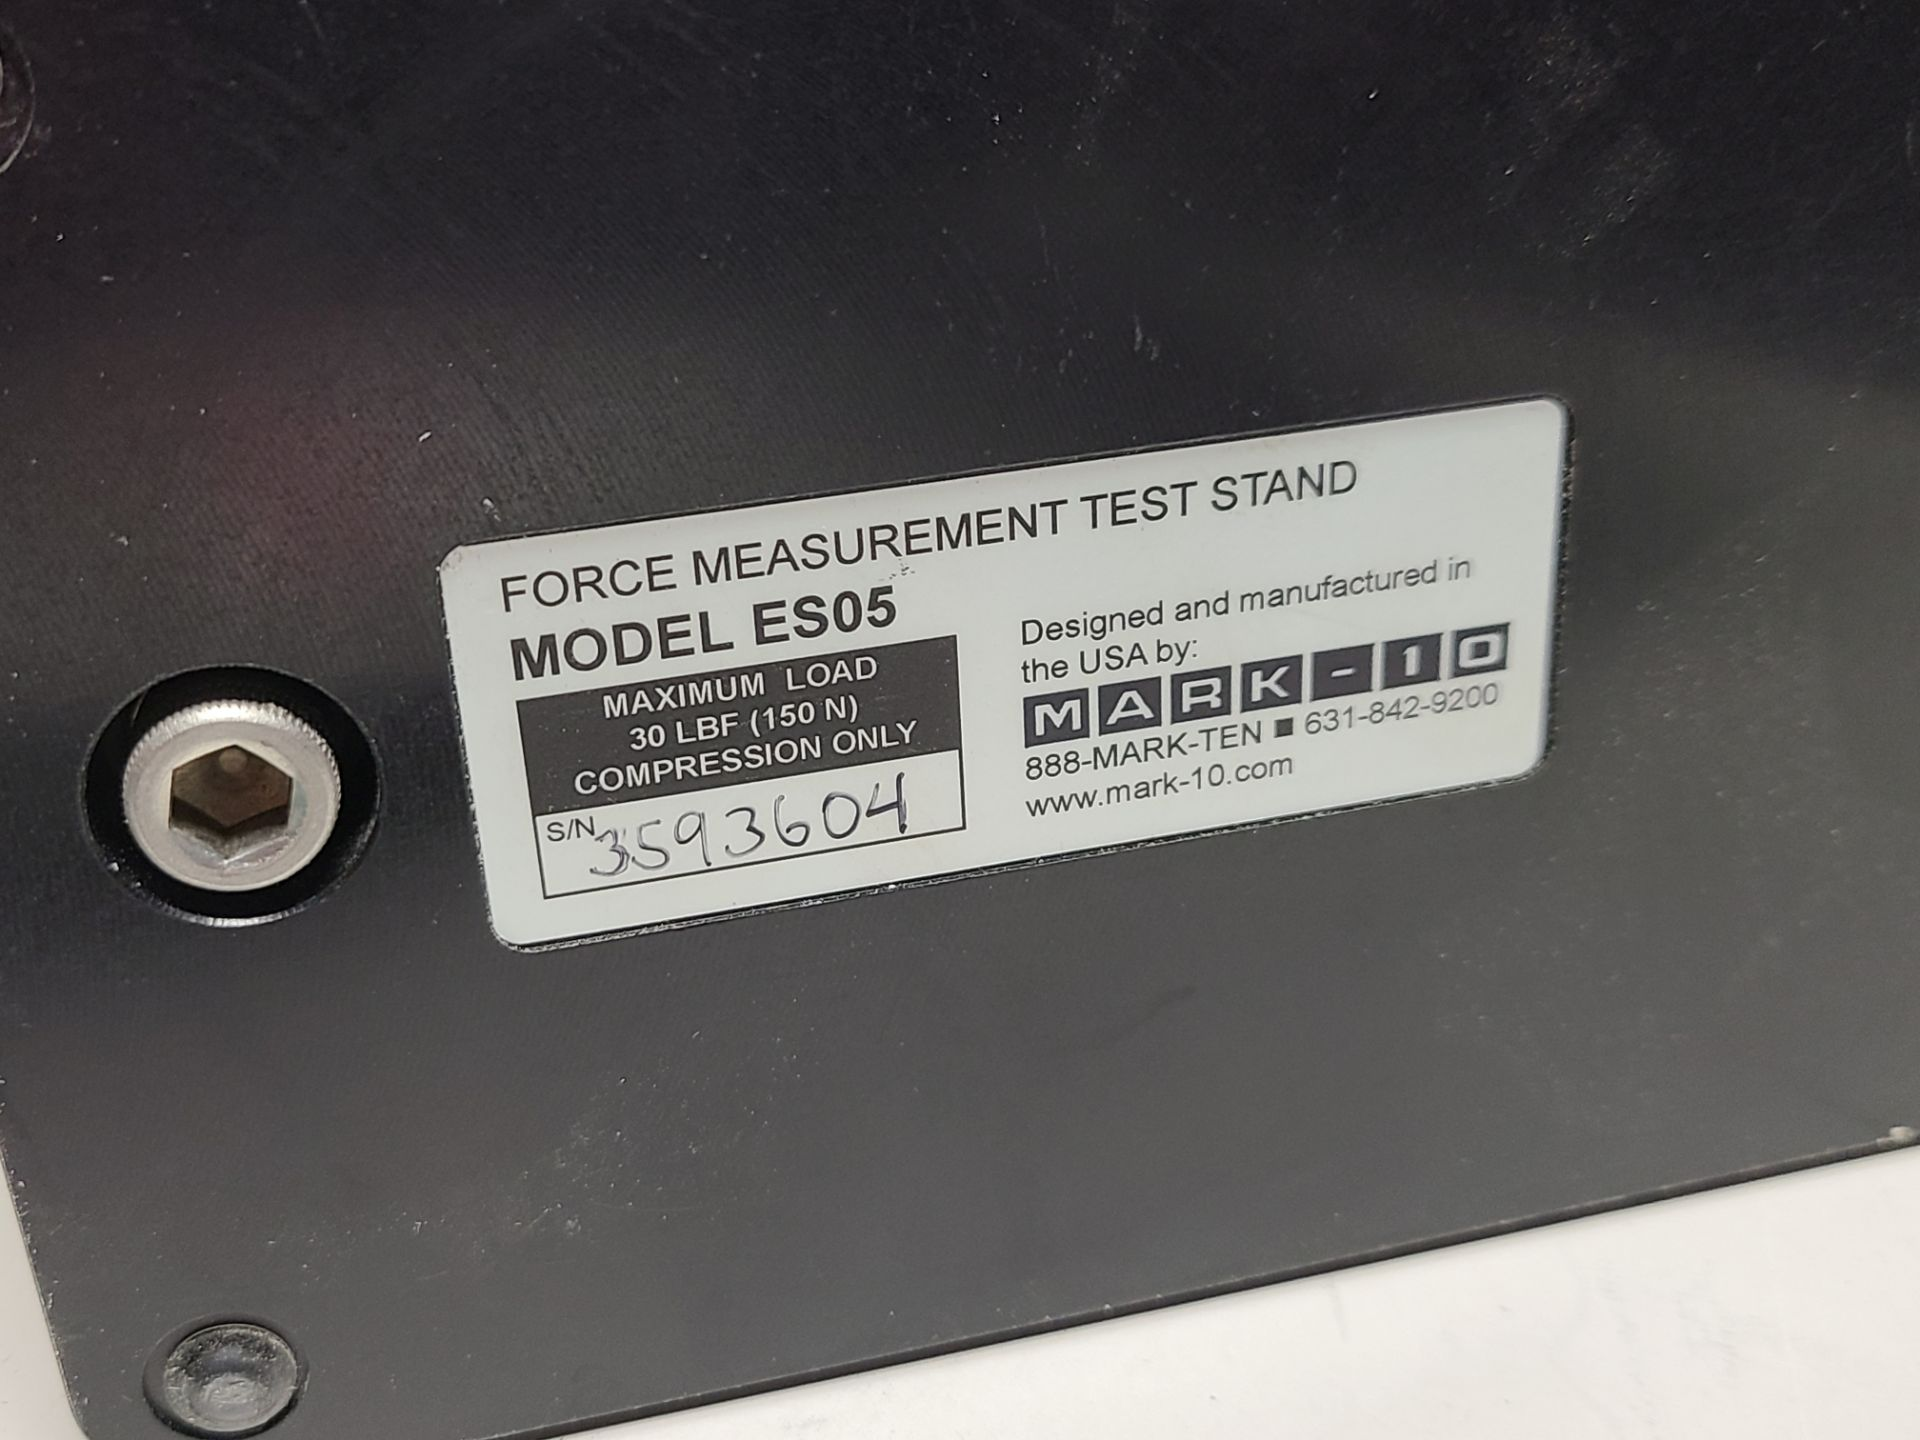 MARK-10 FORCE MEASUREMENT TEST STAND & TRANSDUCER - Image 4 of 7